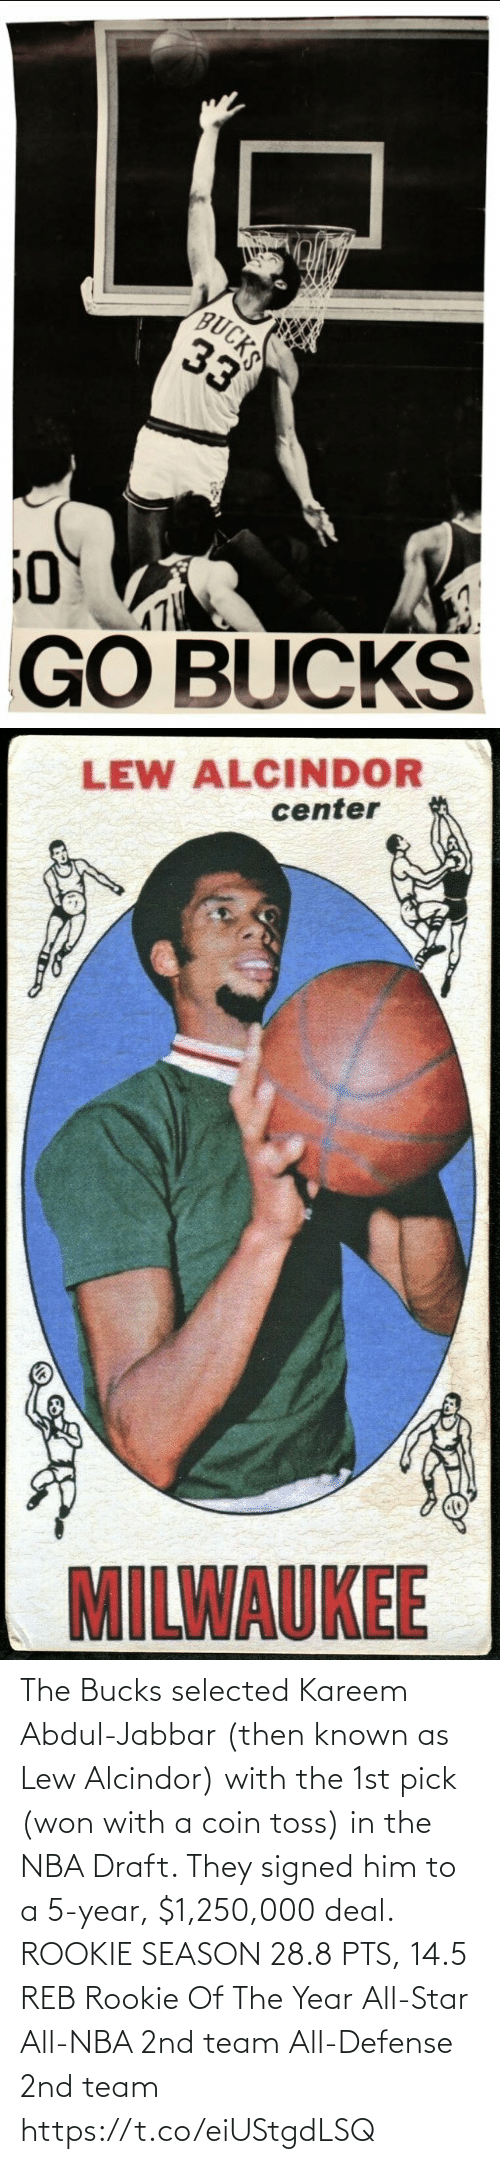 Selected: The Bucks selected Kareem Abdul-Jabbar (then known as Lew Alcindor) with the 1st pick (won with a coin toss) in the NBA Draft. They signed him to a 5-year, $1,250,000 deal.   ROOKIE SEASON 28.8 PTS, 14.5 REB Rookie Of The Year All-Star All-NBA 2nd team All-Defense 2nd team https://t.co/eiUStgdLSQ